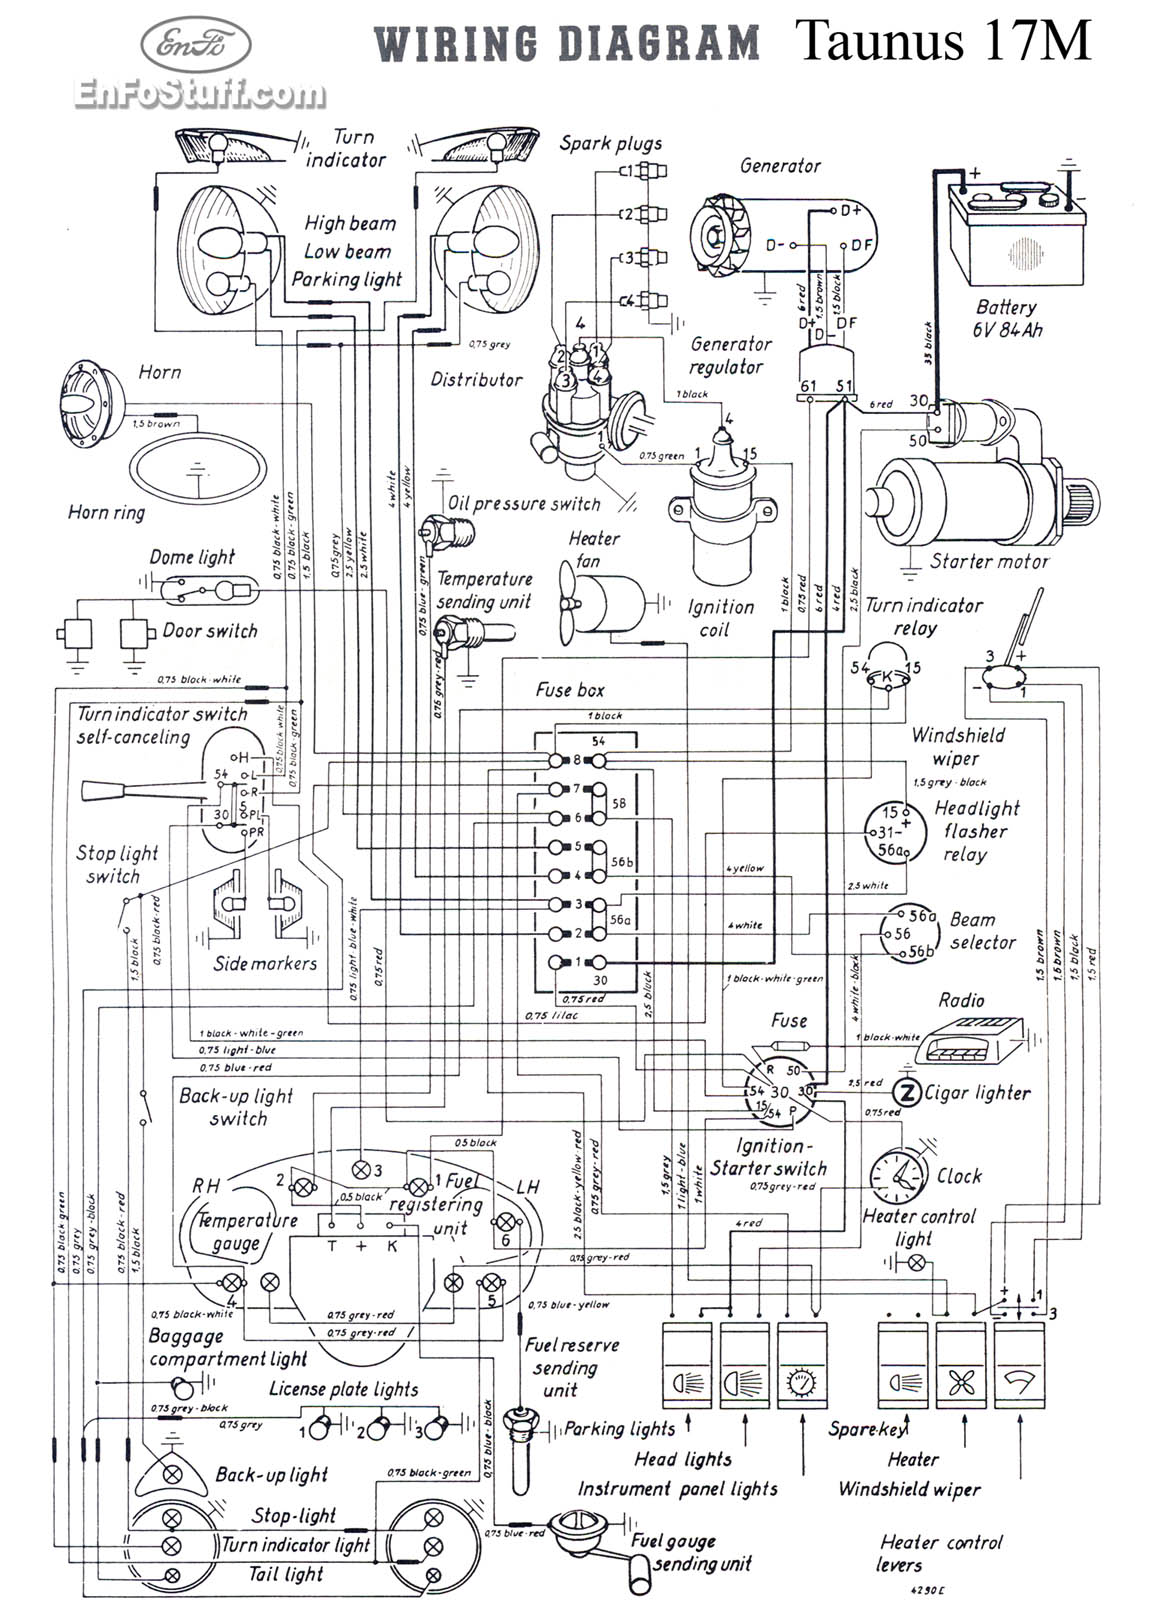 1974 super beetle wiring diagram  u2013 annavernon  u2013 readingrat net